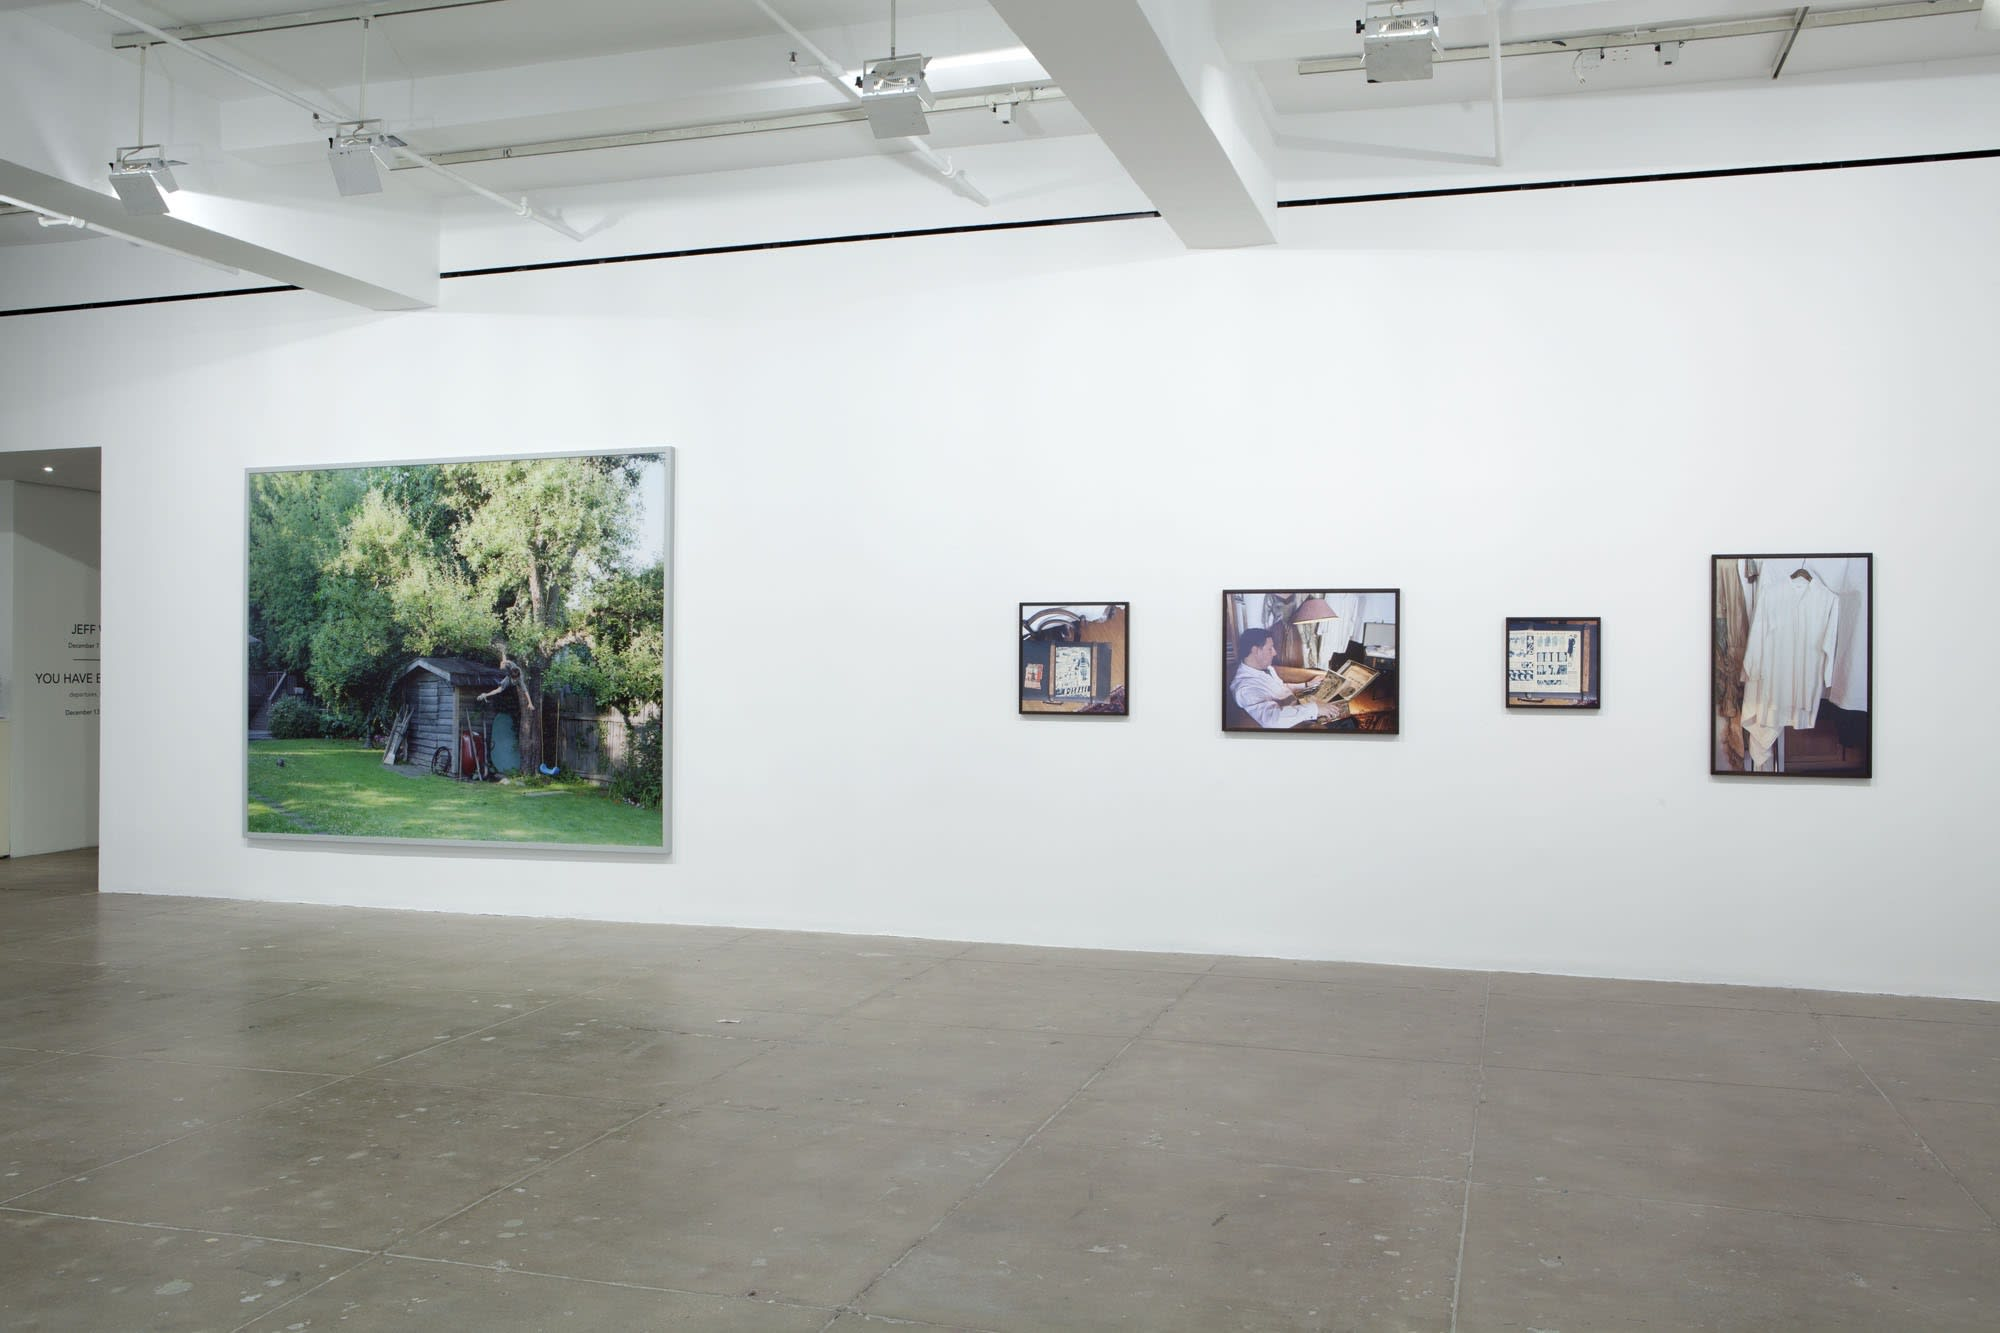 One large photograph of a treehouse hangs alongside four small images of clothes, a man reading and knick-knacks.